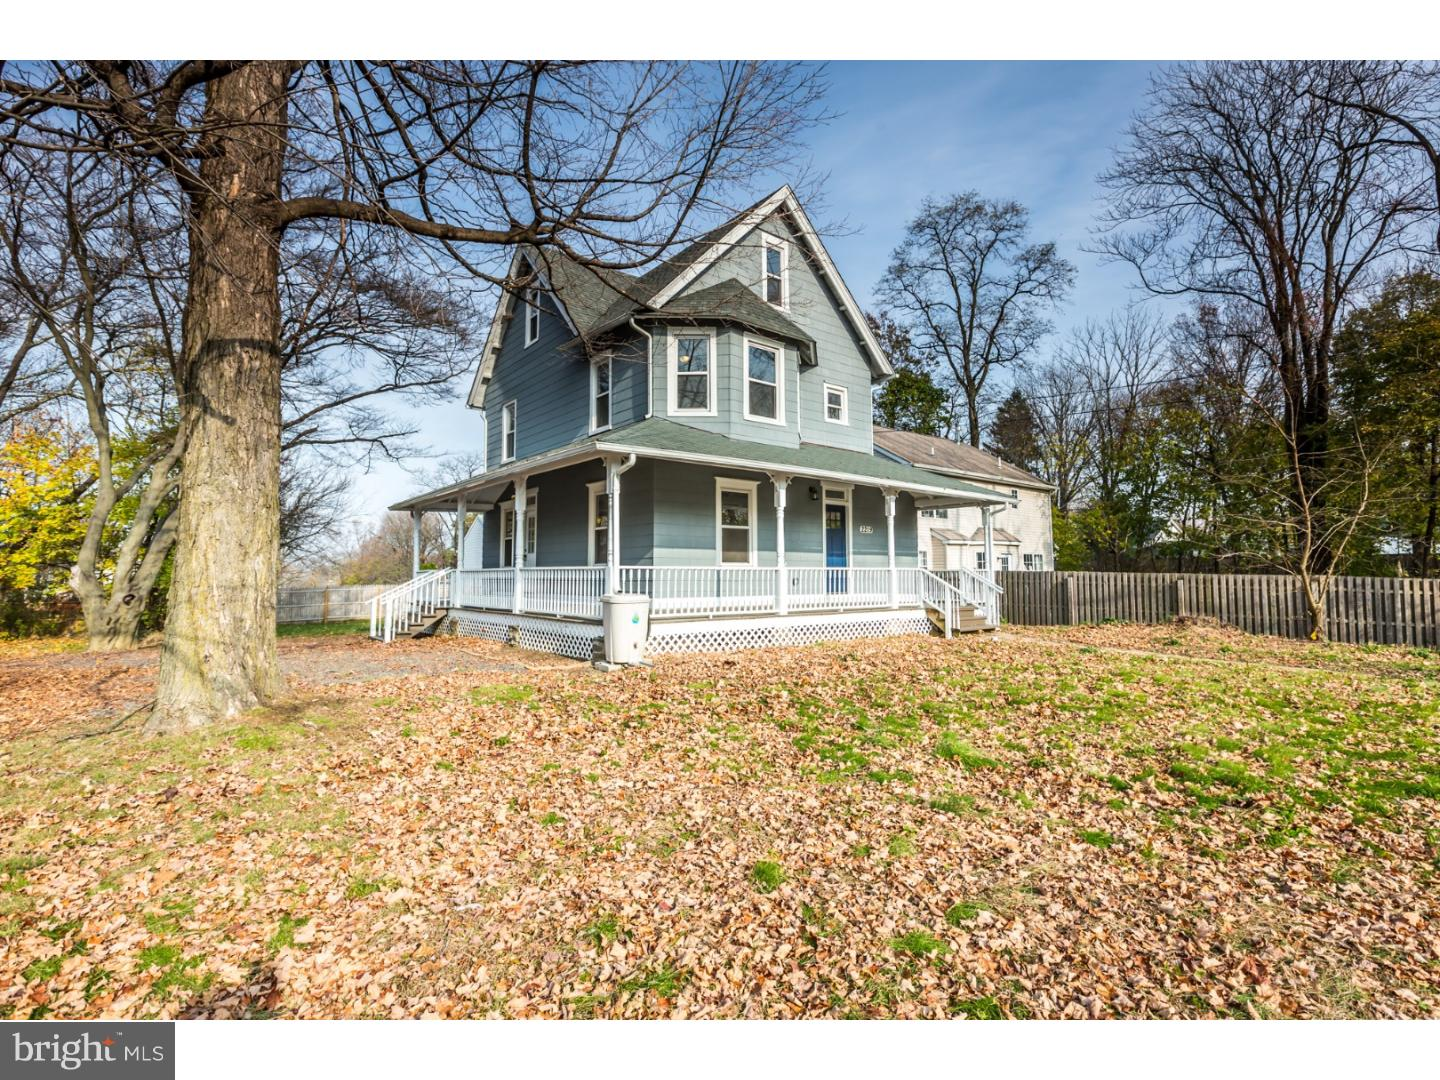 2219 OLD WELSH ROAD, WILLOW GROVE, PA 19090